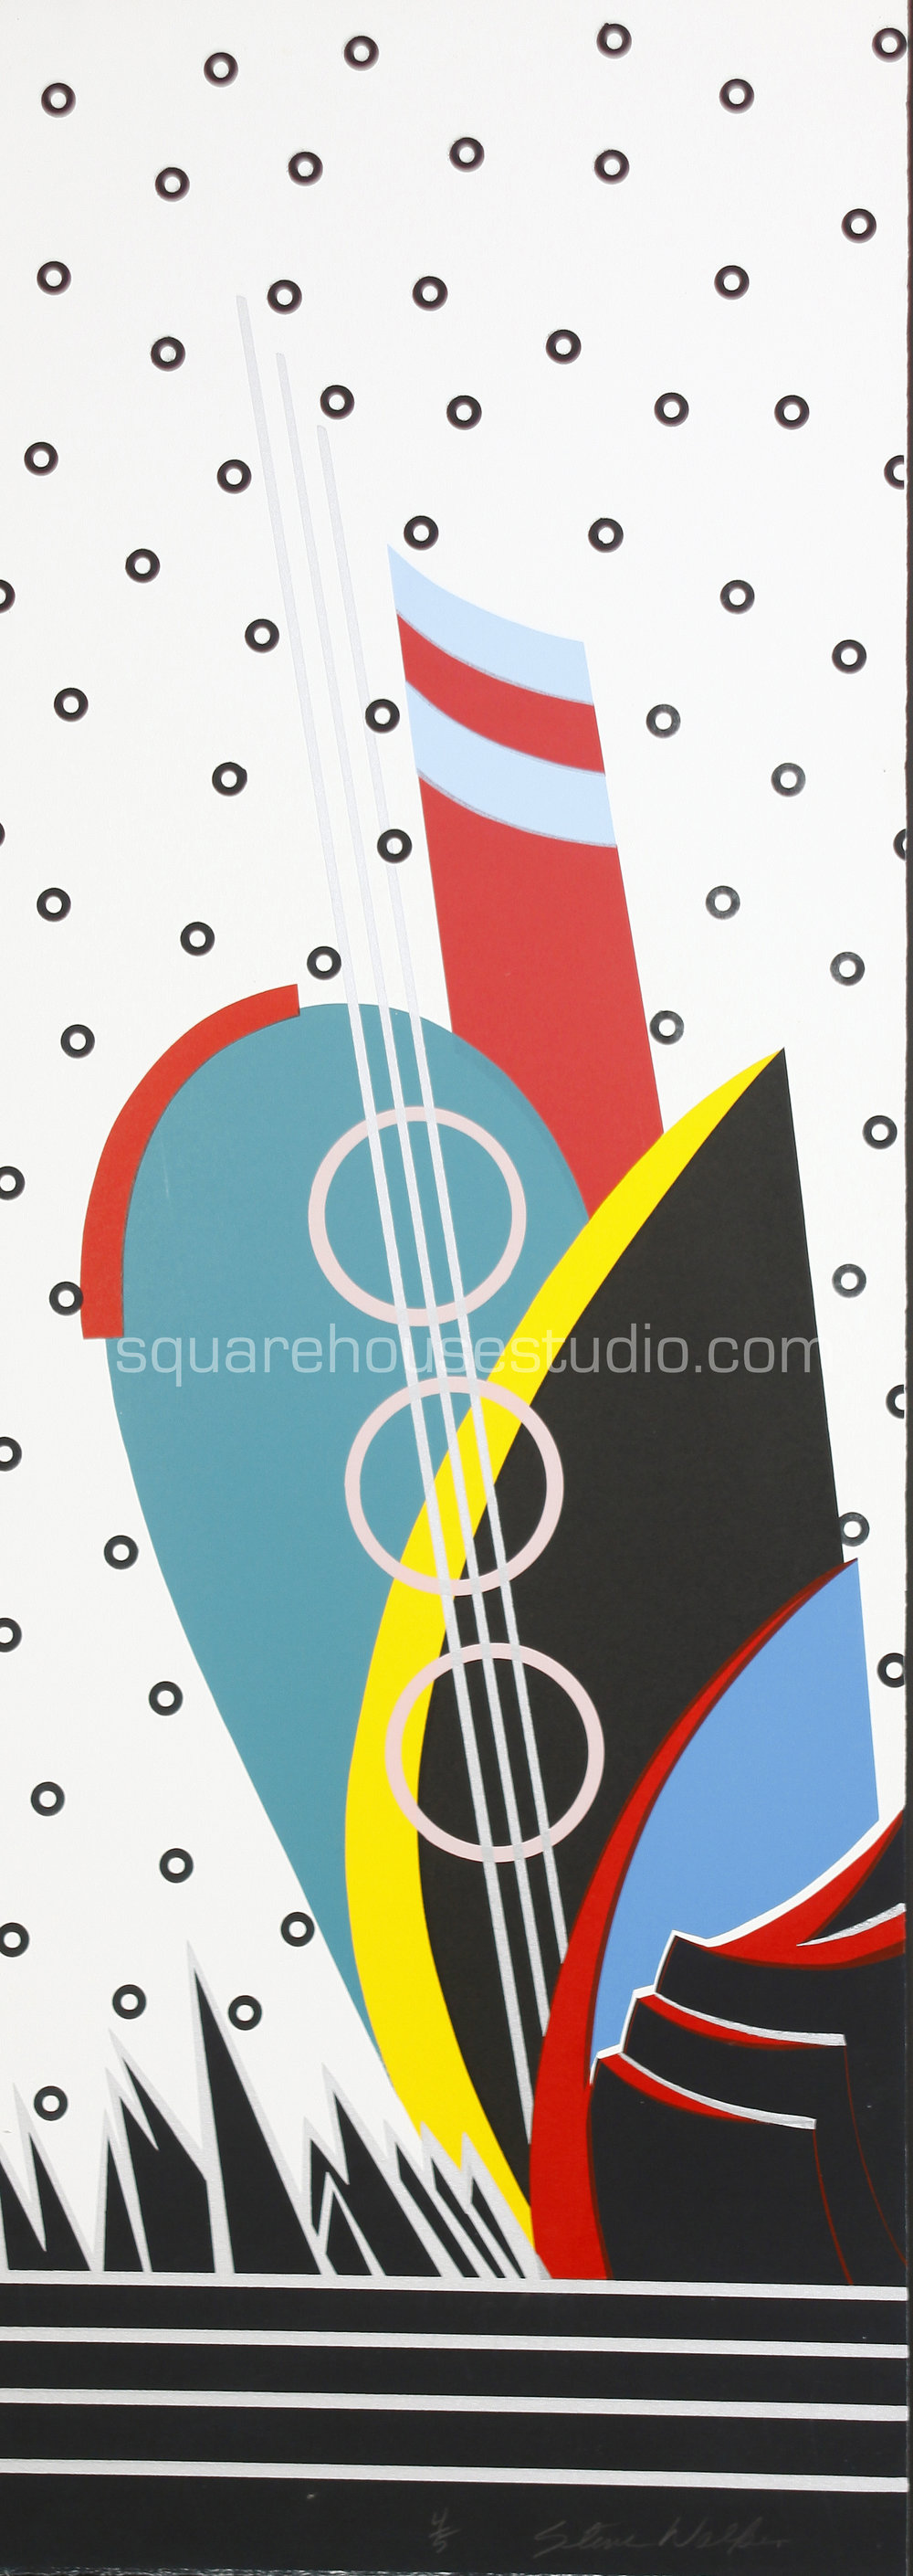 "Memphis Music , 16"" x 40,"" original edition, $625 framed / $475 unframed, Available as giclée print—$450 framed / $300 unframed"